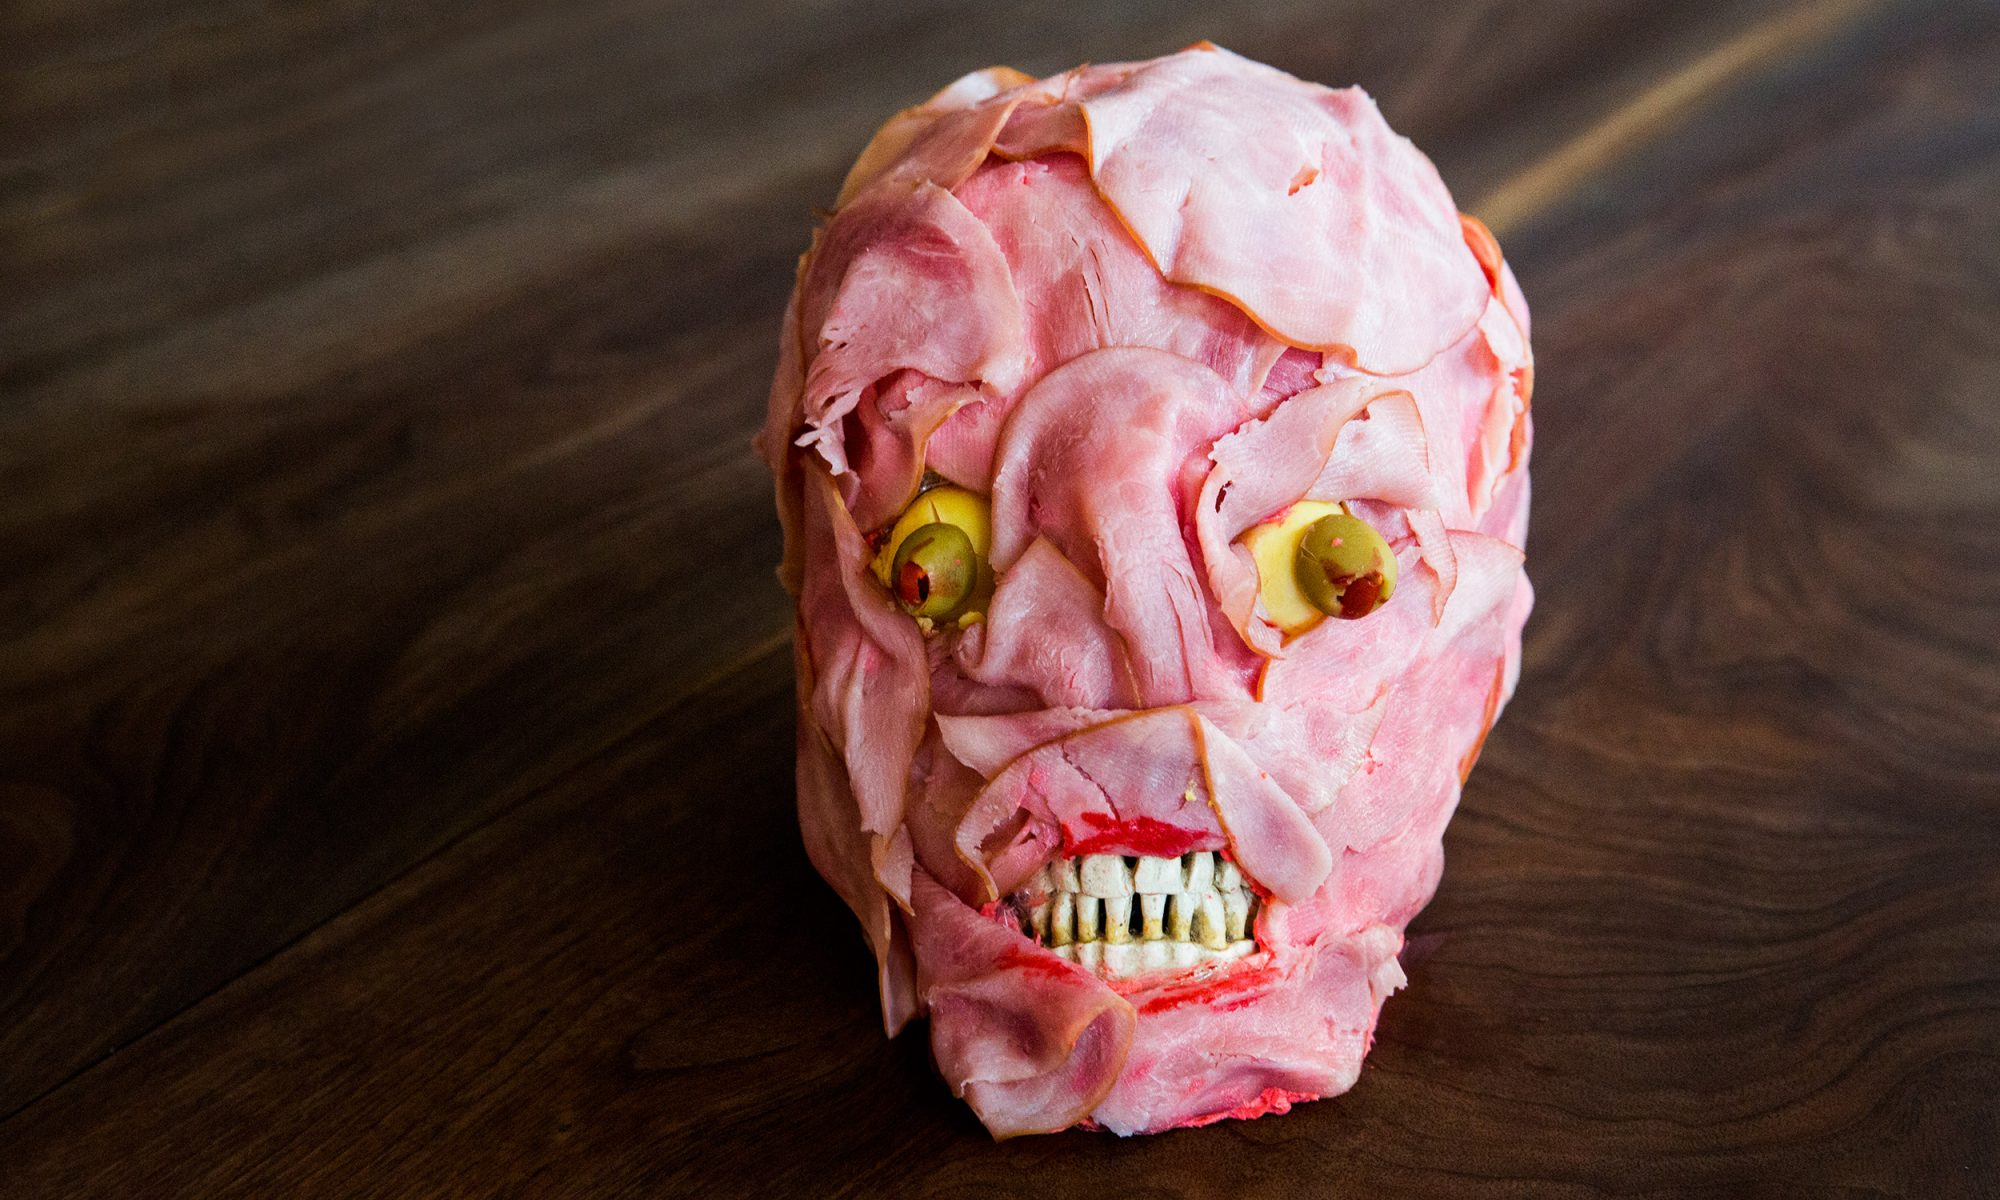 EC: You Should Make a Meat Head for Halloween